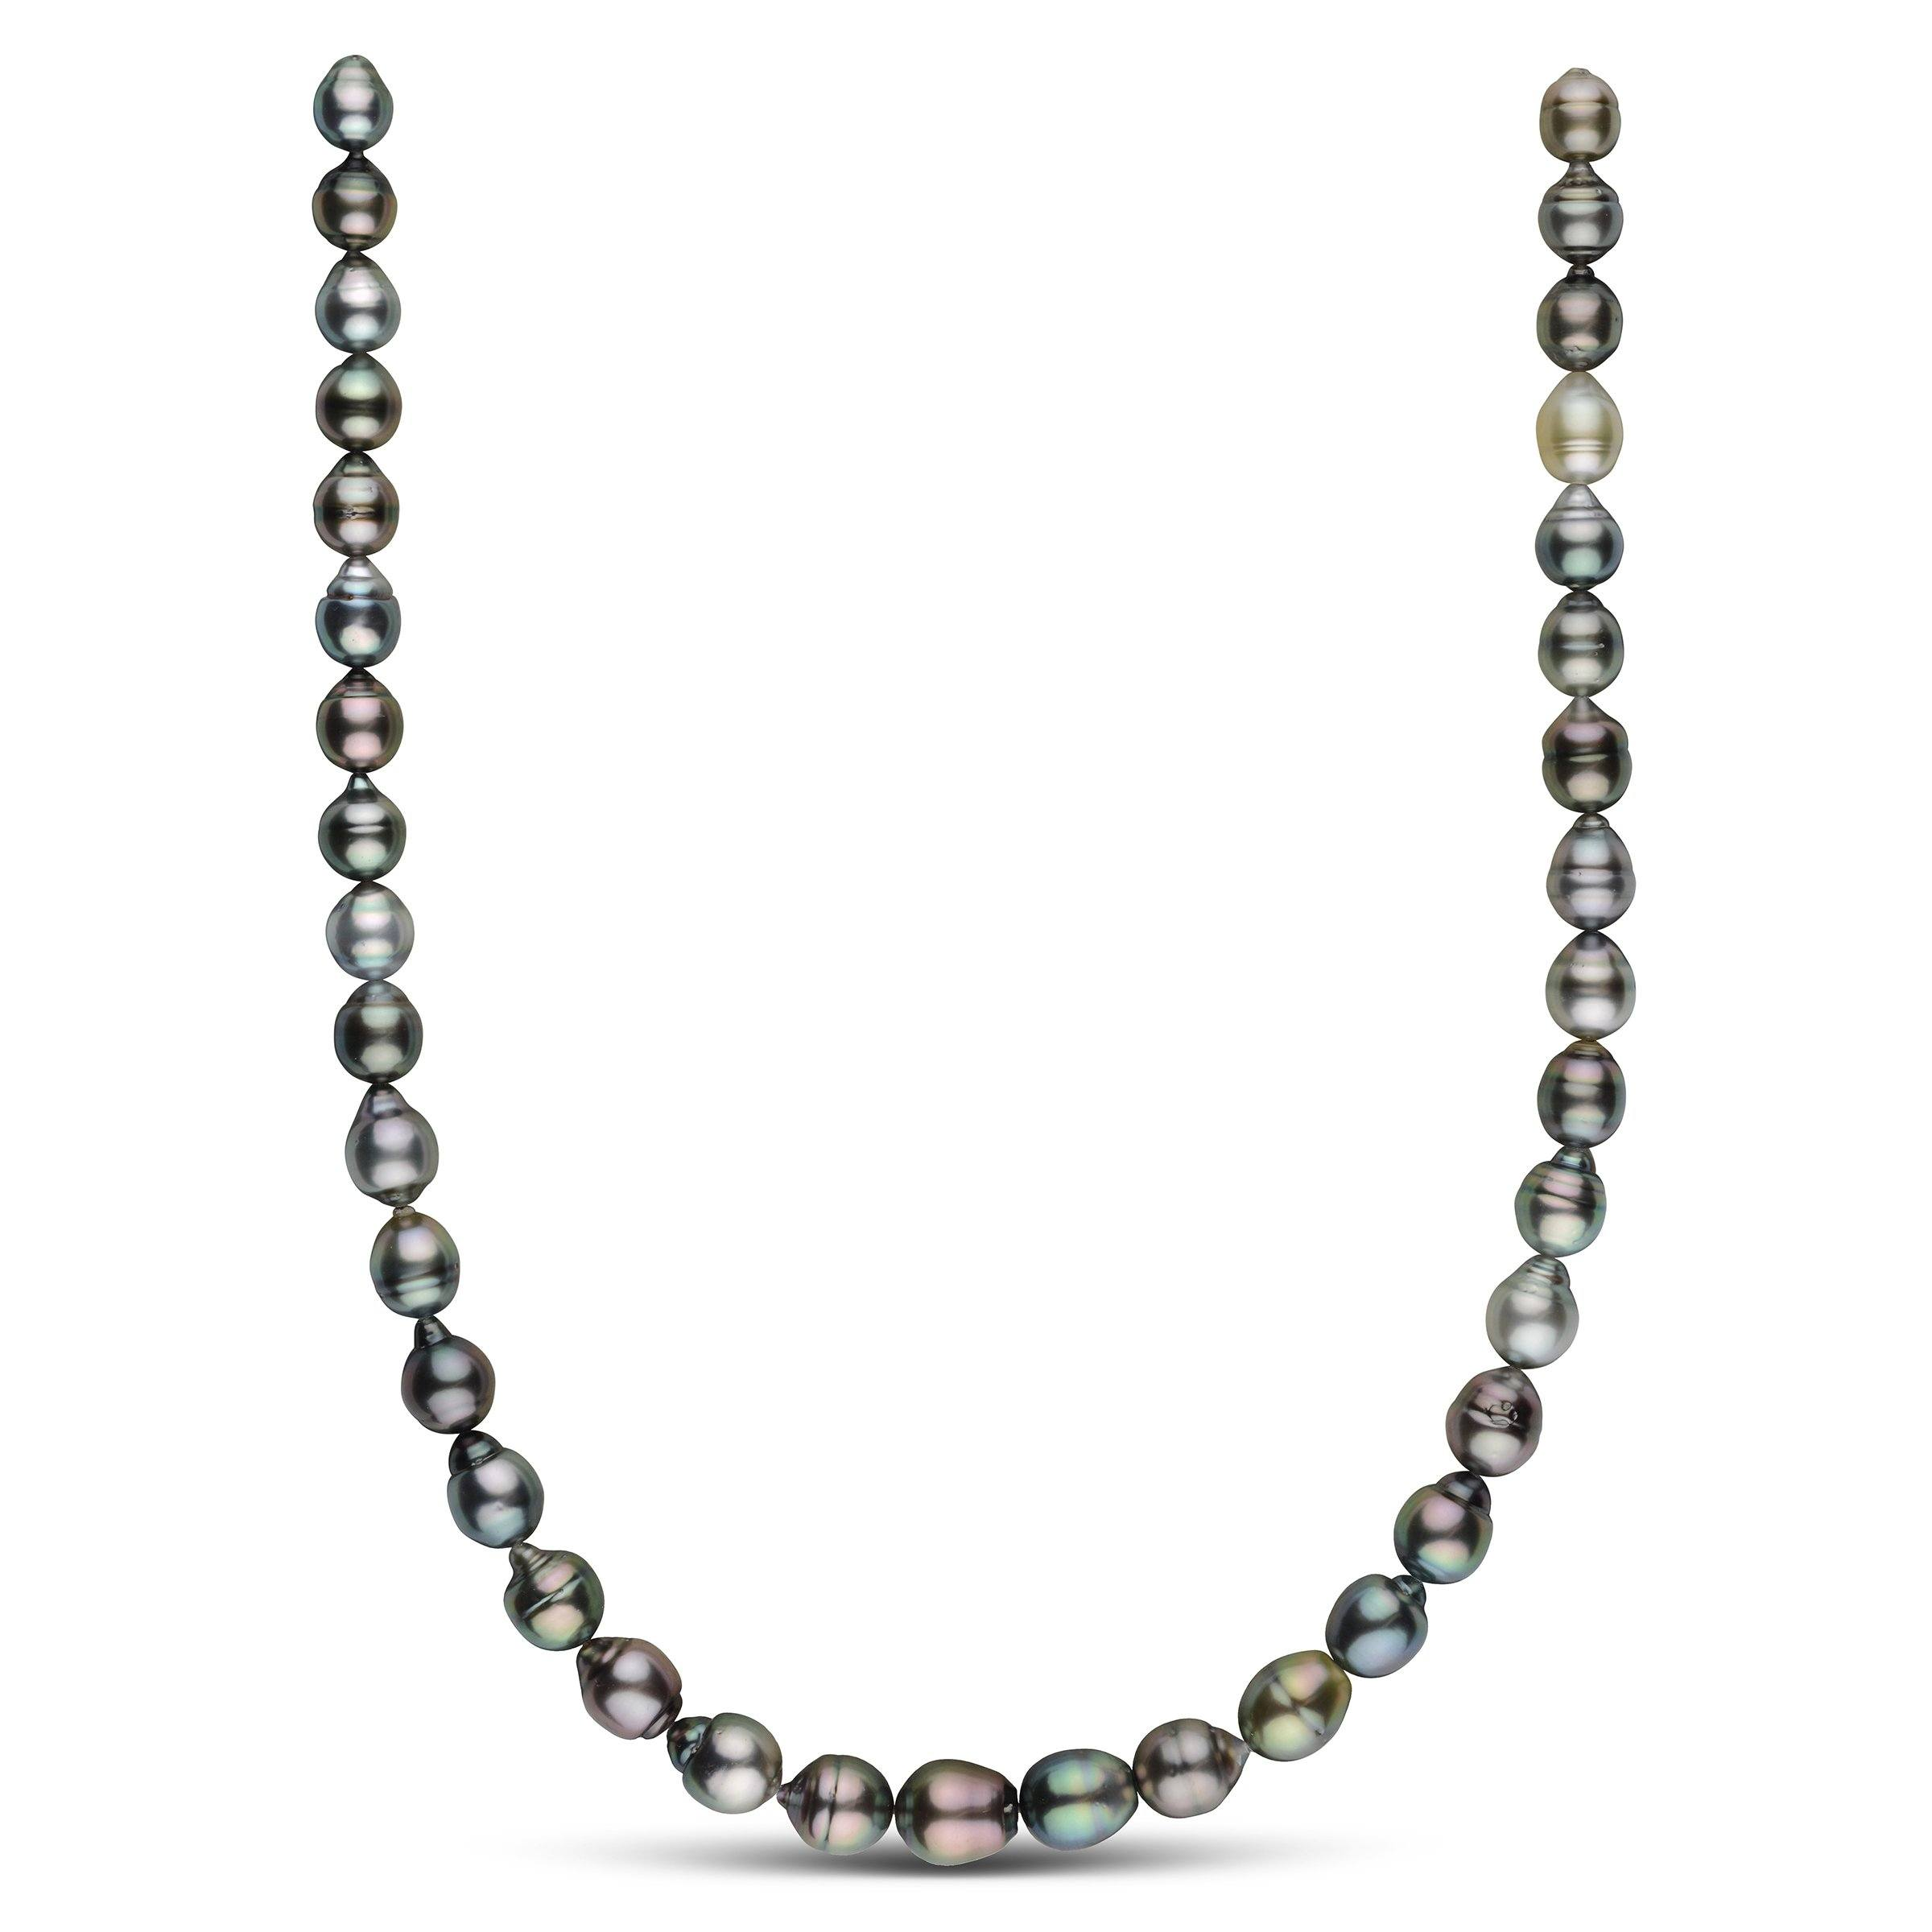 8.0-10.5 mm AAA Tahitian Baroque Pearl Necklace